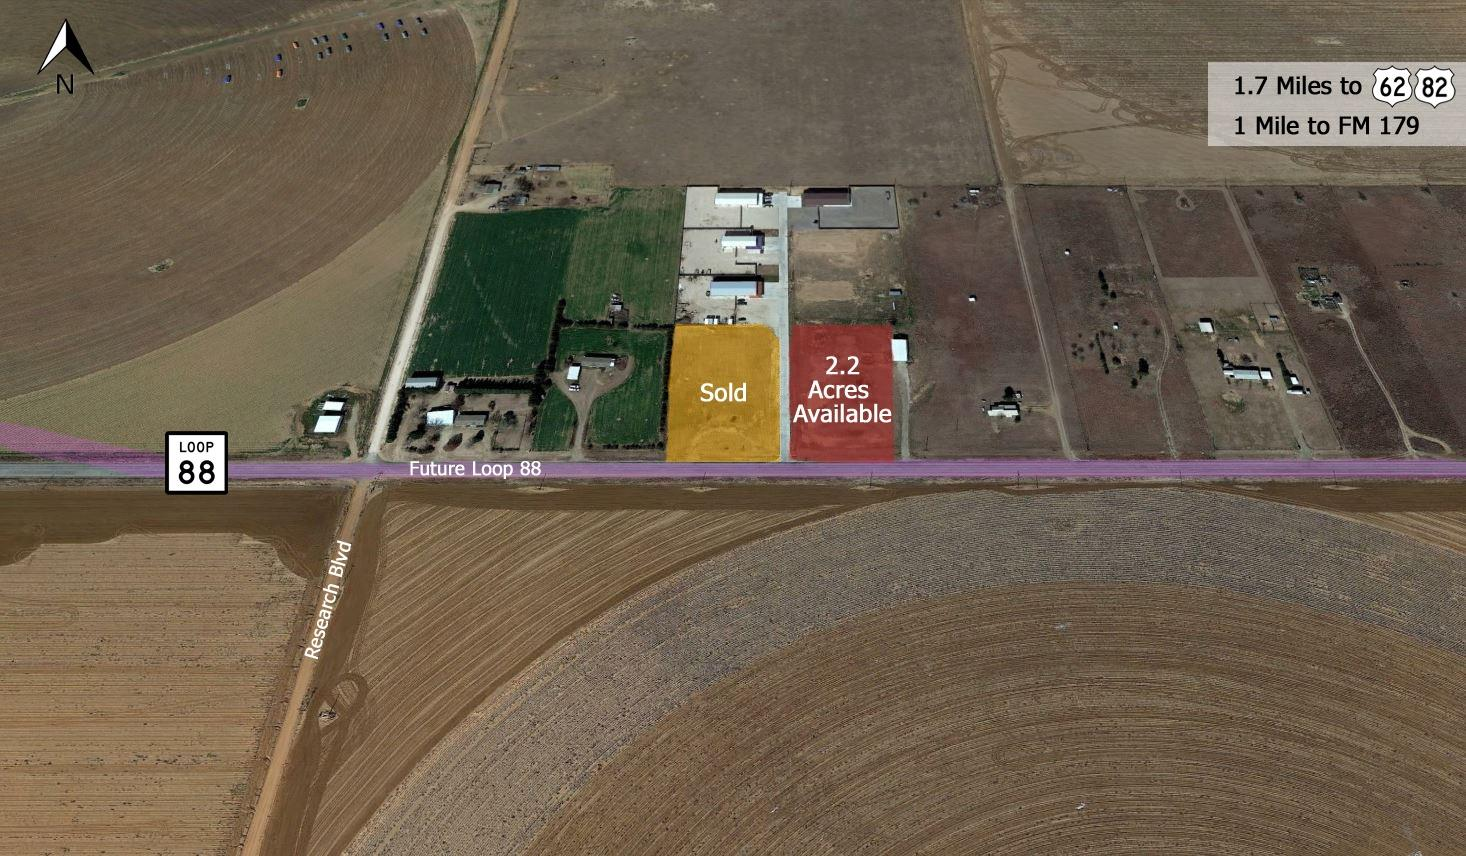 2.2 acres for sale, located in Business park.  Seller will provide up to 30,000 square feet, dock high build to suit.  Outside city limits.  +/- 249 Feet of Future Loop 88 Frontage; Less than 1 Mile From FM 179; Easy Access to Highway 62/82